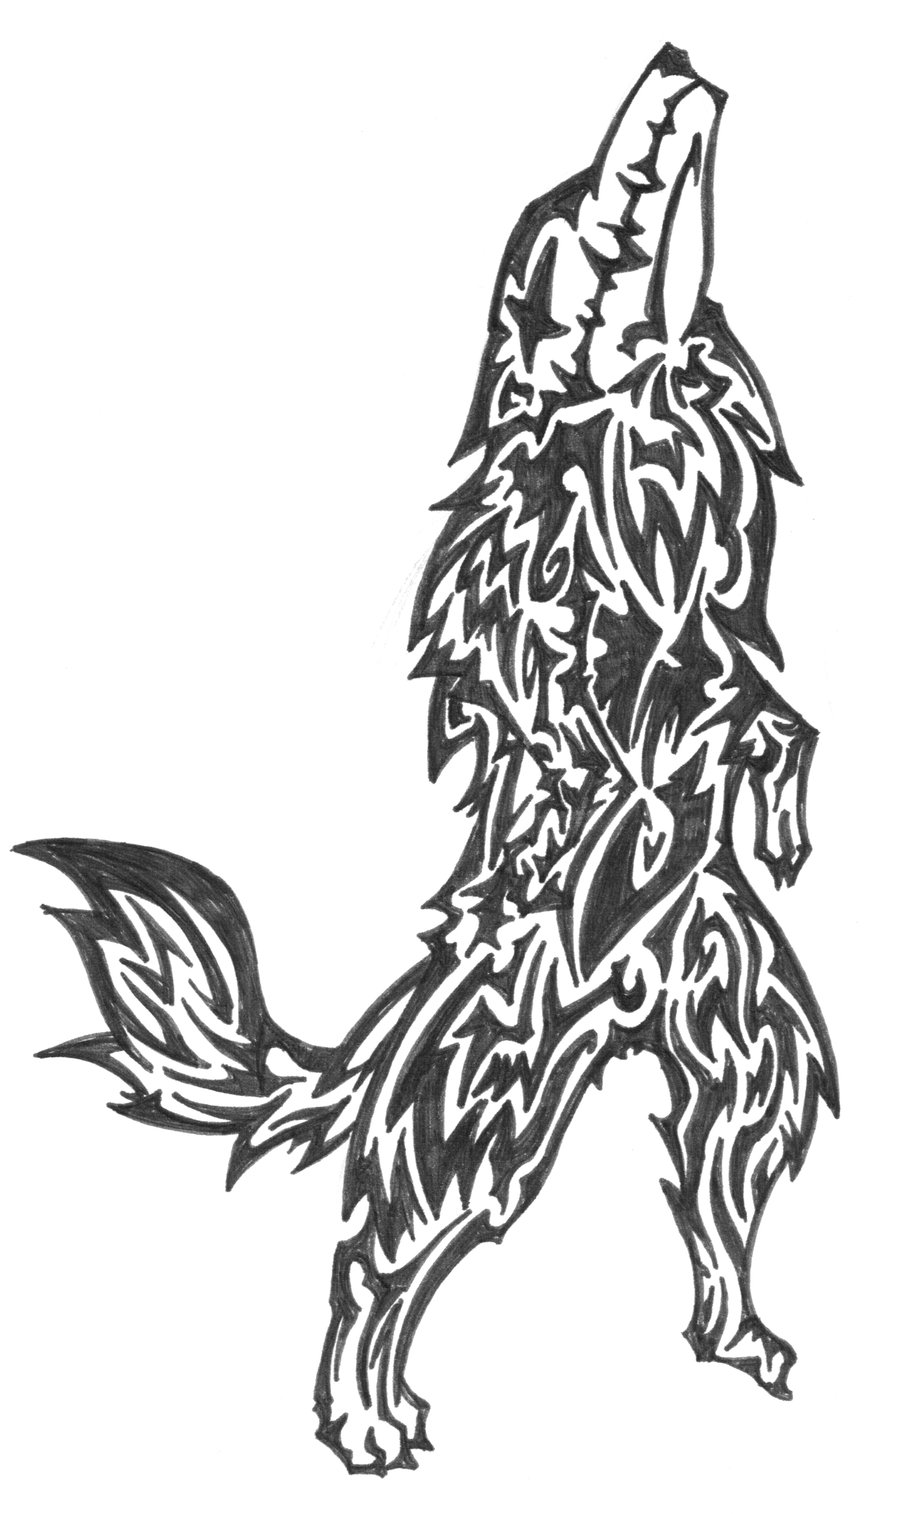 Wolf tattoo design black and white wolf tattoo design art flash - Design art black and white ...